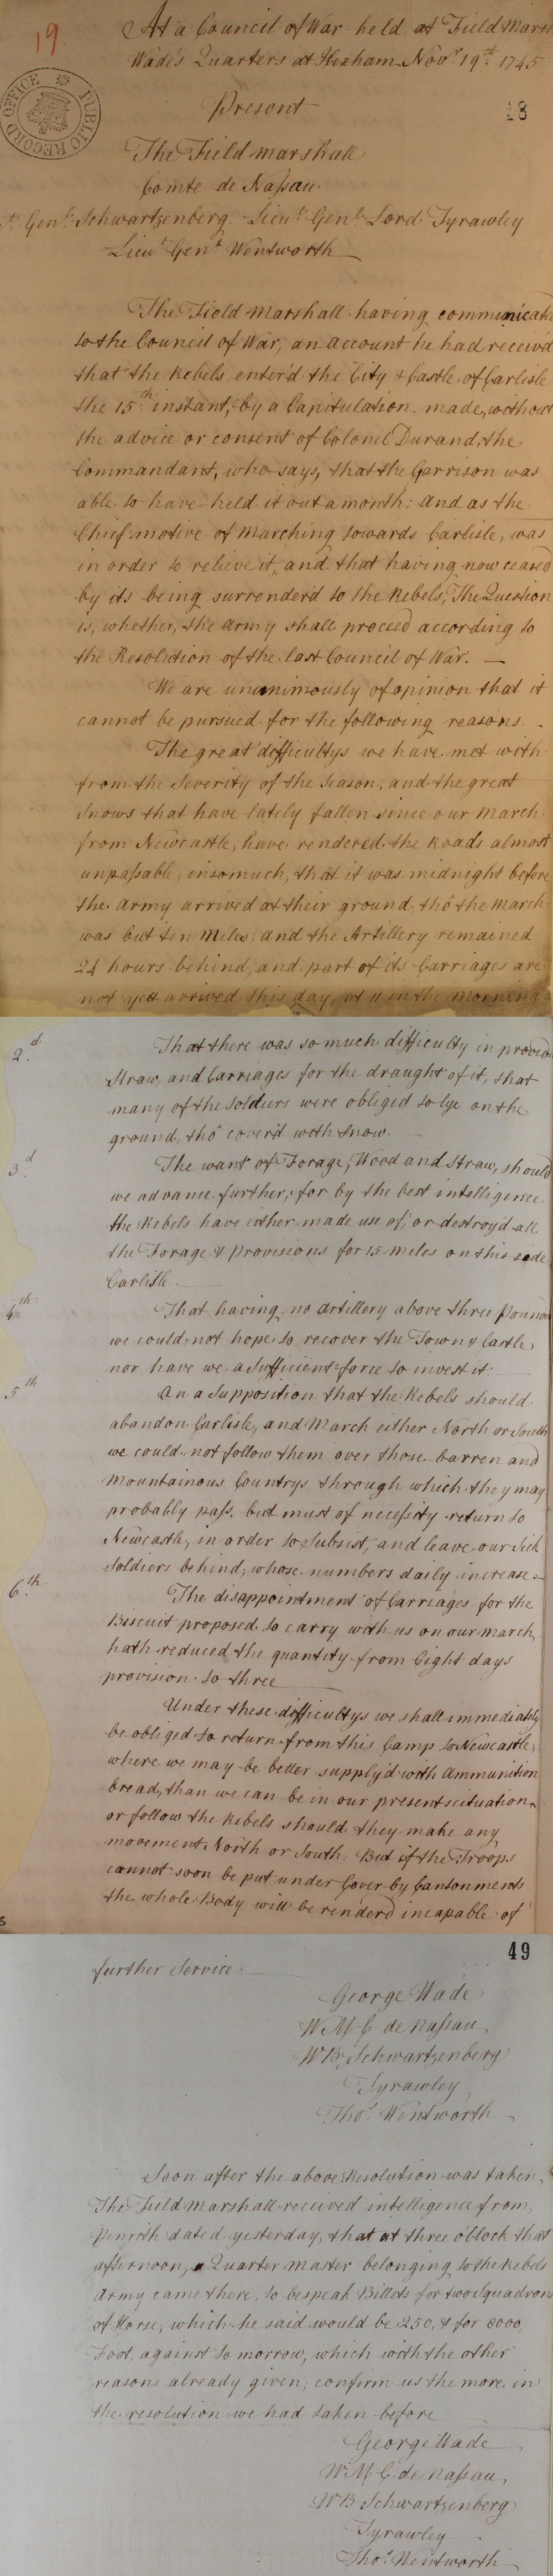 Resolutions from General Wade's Council of War,1745